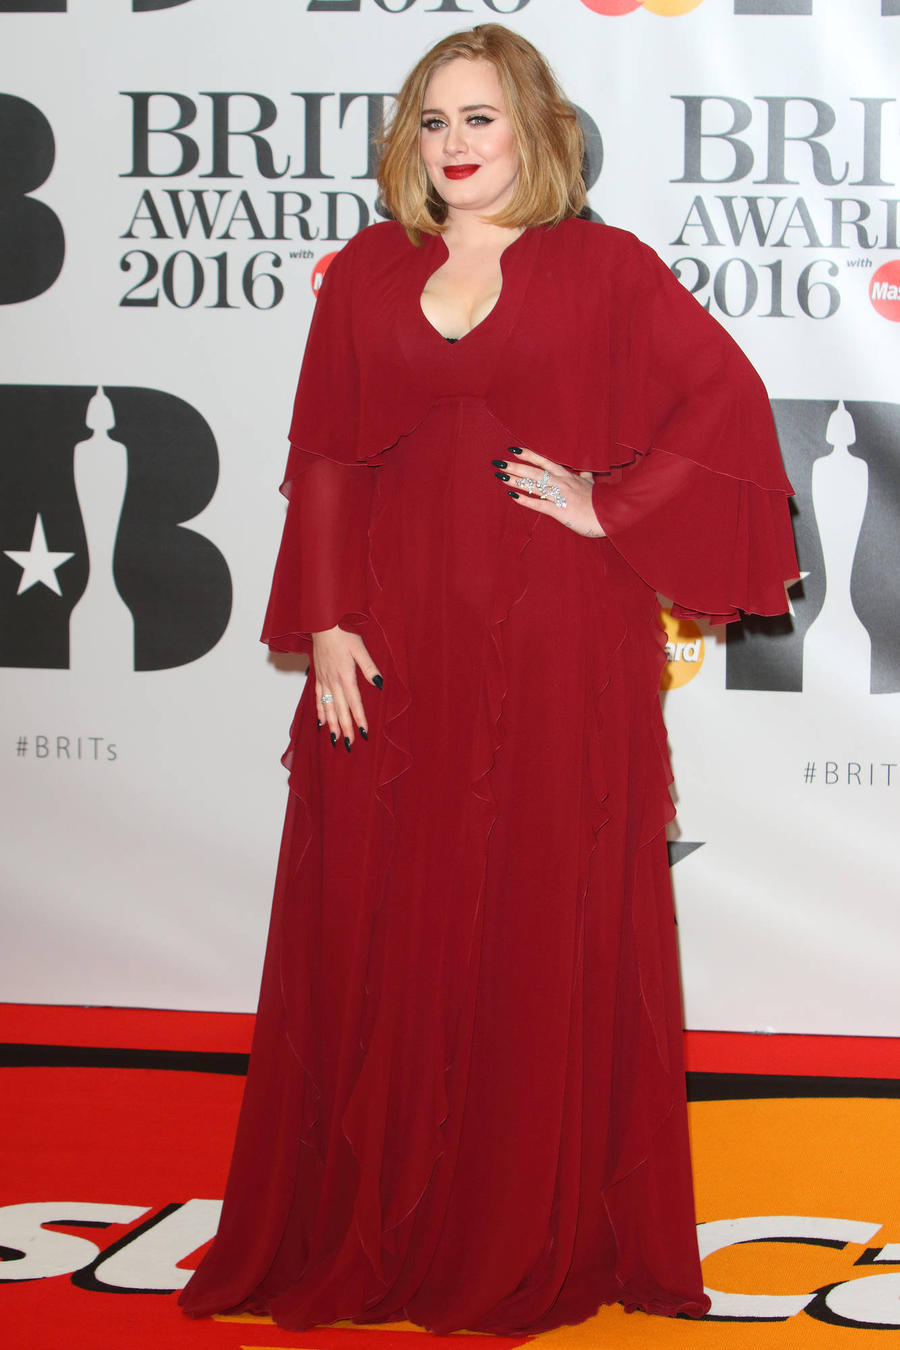 Adele Stops Gig To Rage About Breastfeeding Pressures